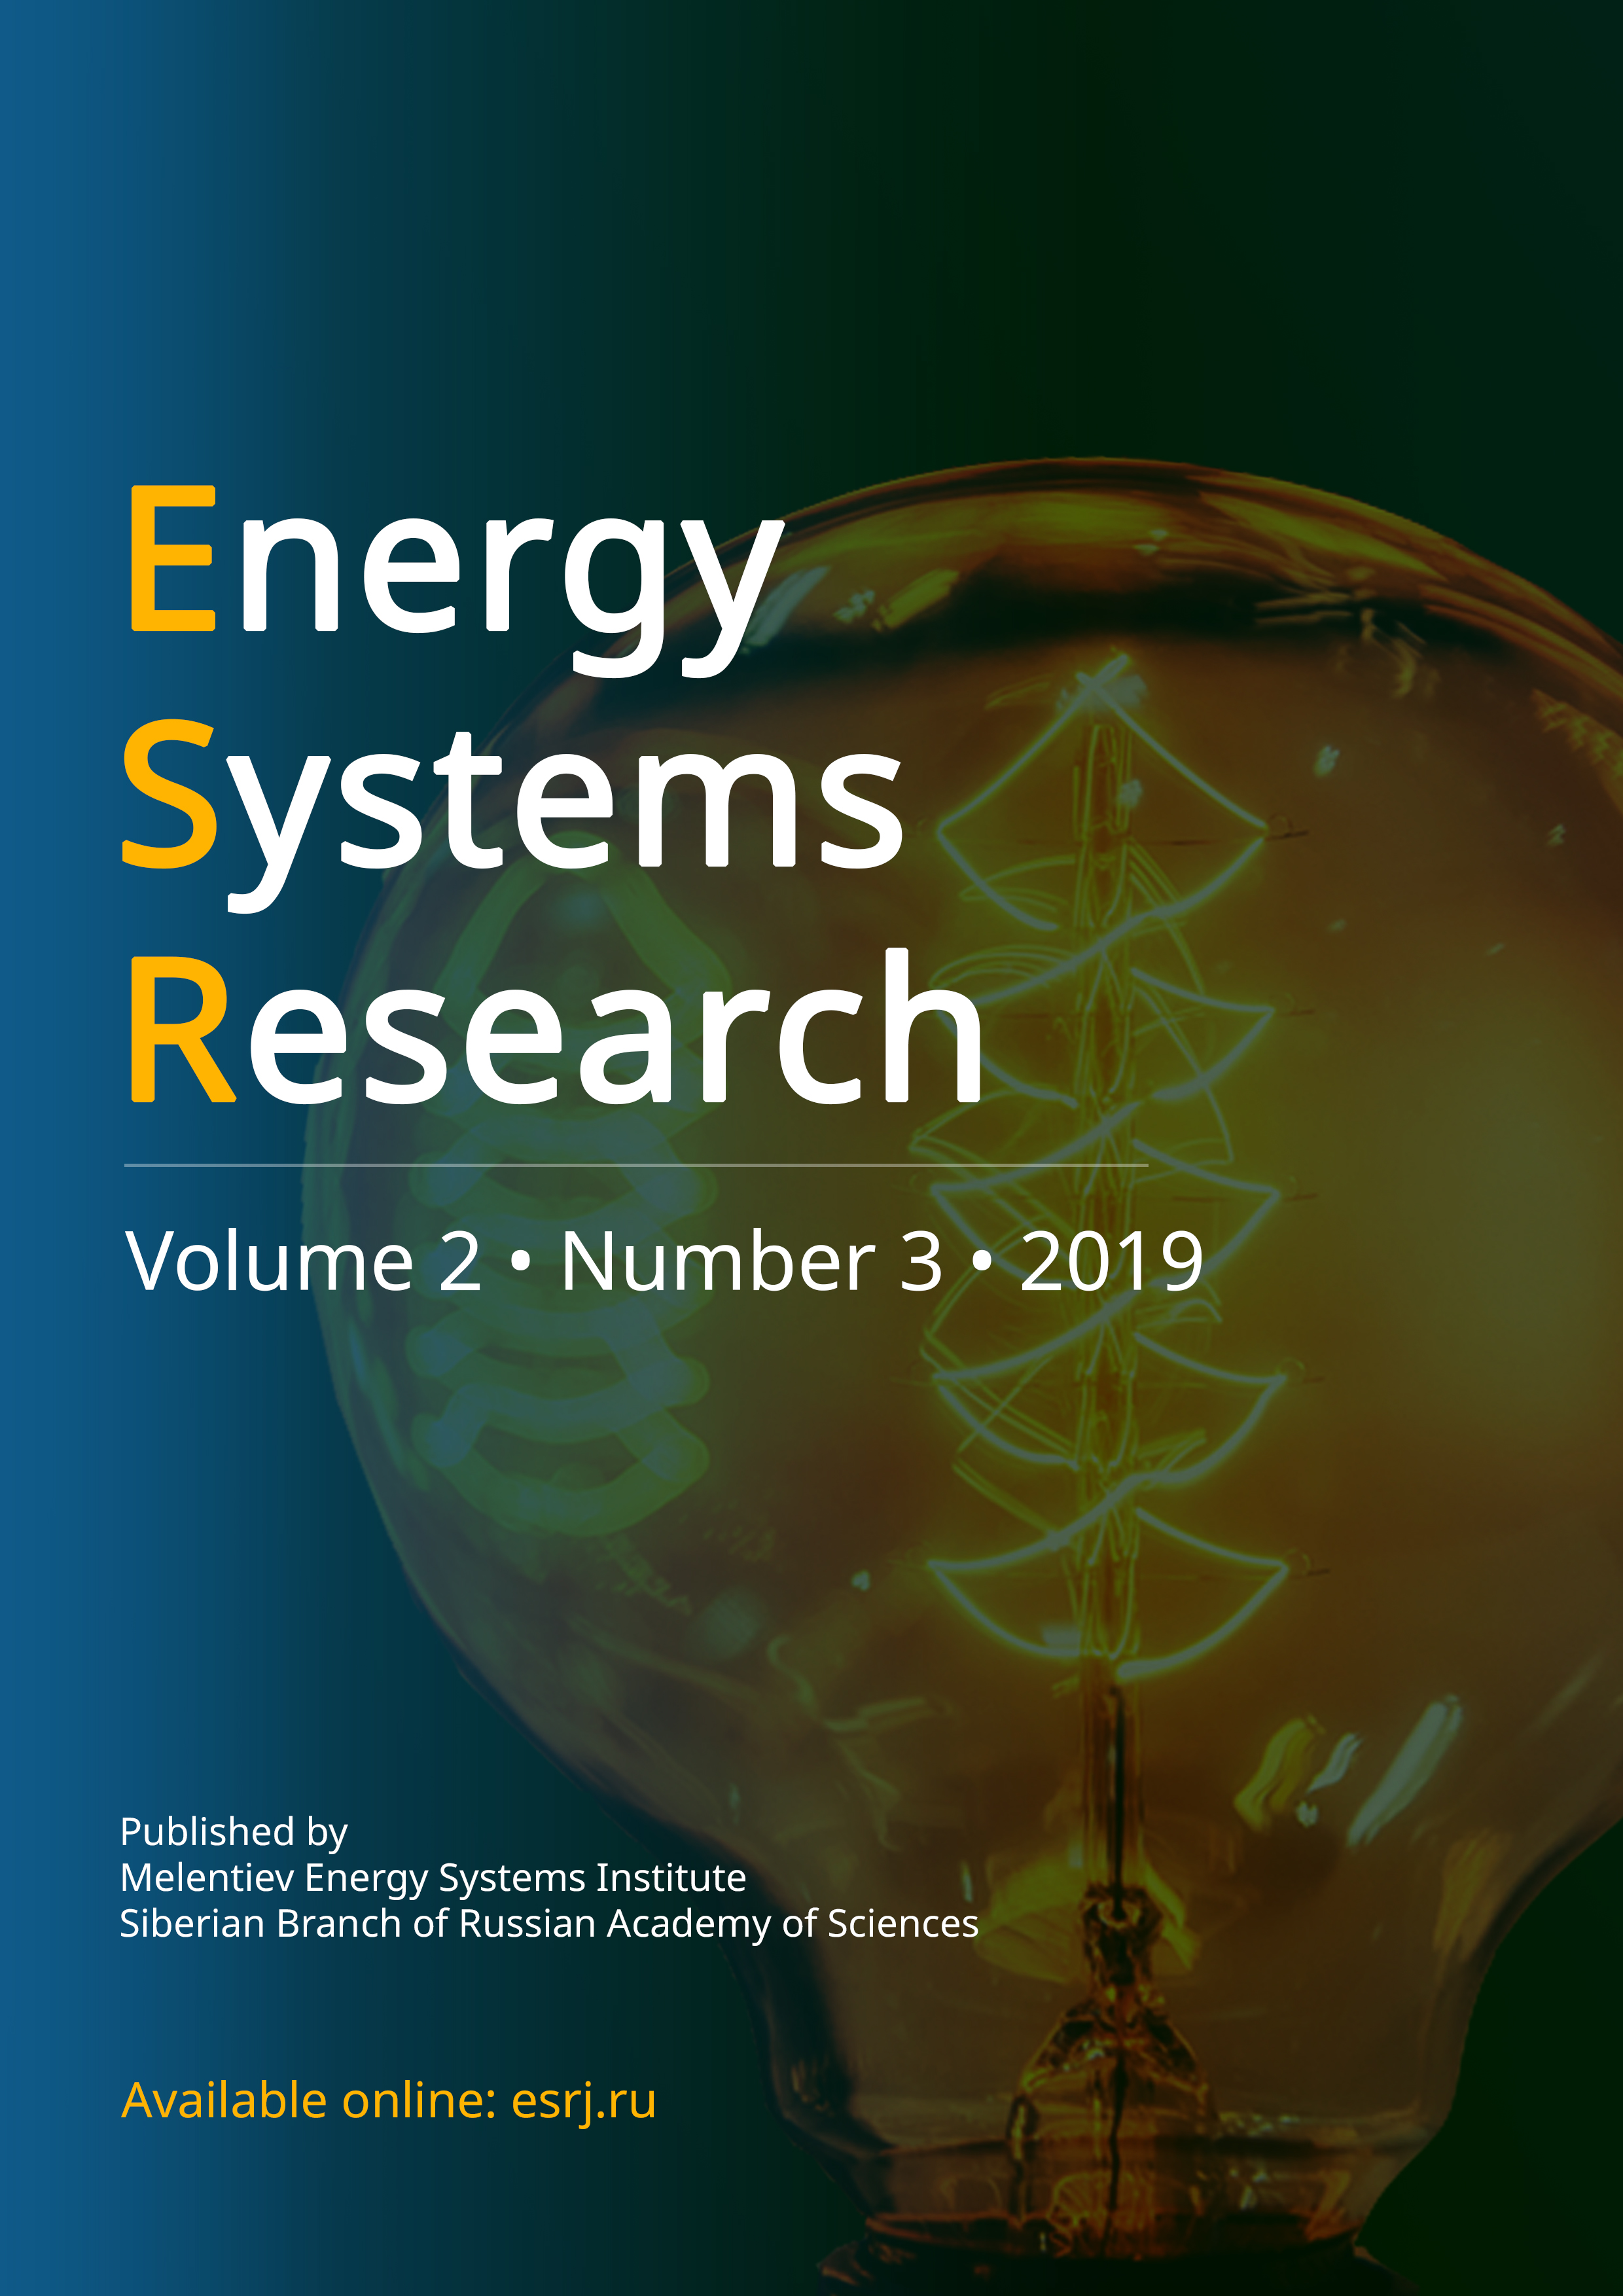 View Vol. 2 No. 3 (2019): Energy Systems Research